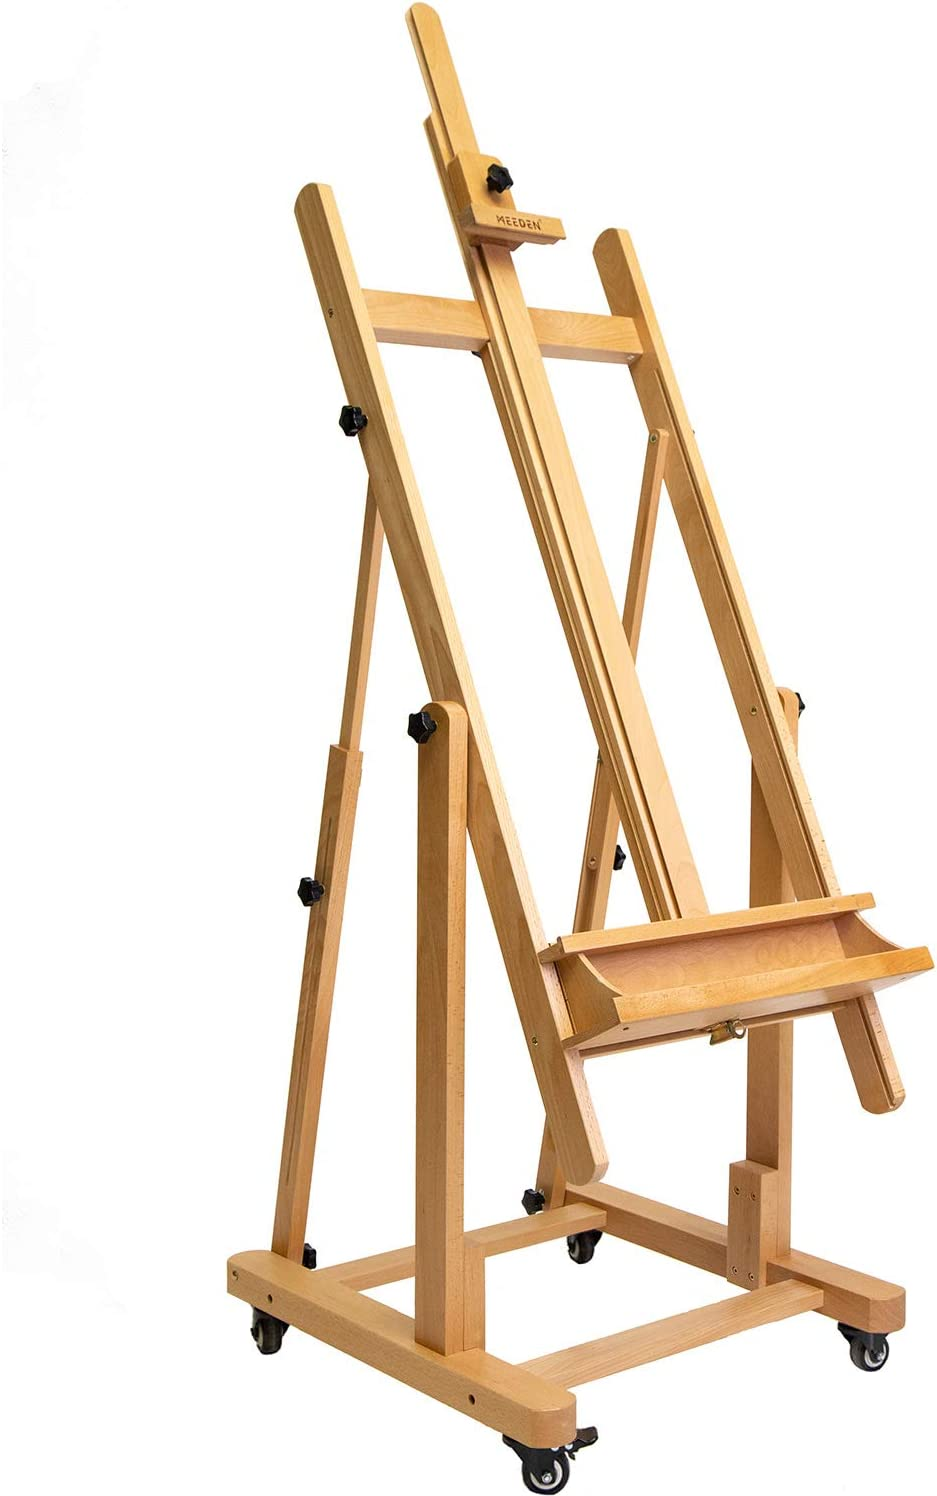 """MEEDEN Extra Large Heavy-Duty H-Frame Studio Easel - Versatile Solid Beech Wood Artist Professional Easel, Adjustable Painting Art Easel Stand with 4 Premium Locking Silent Caster Wheels, Hold Max 82"""" : Arts, Crafts & Sewing"""